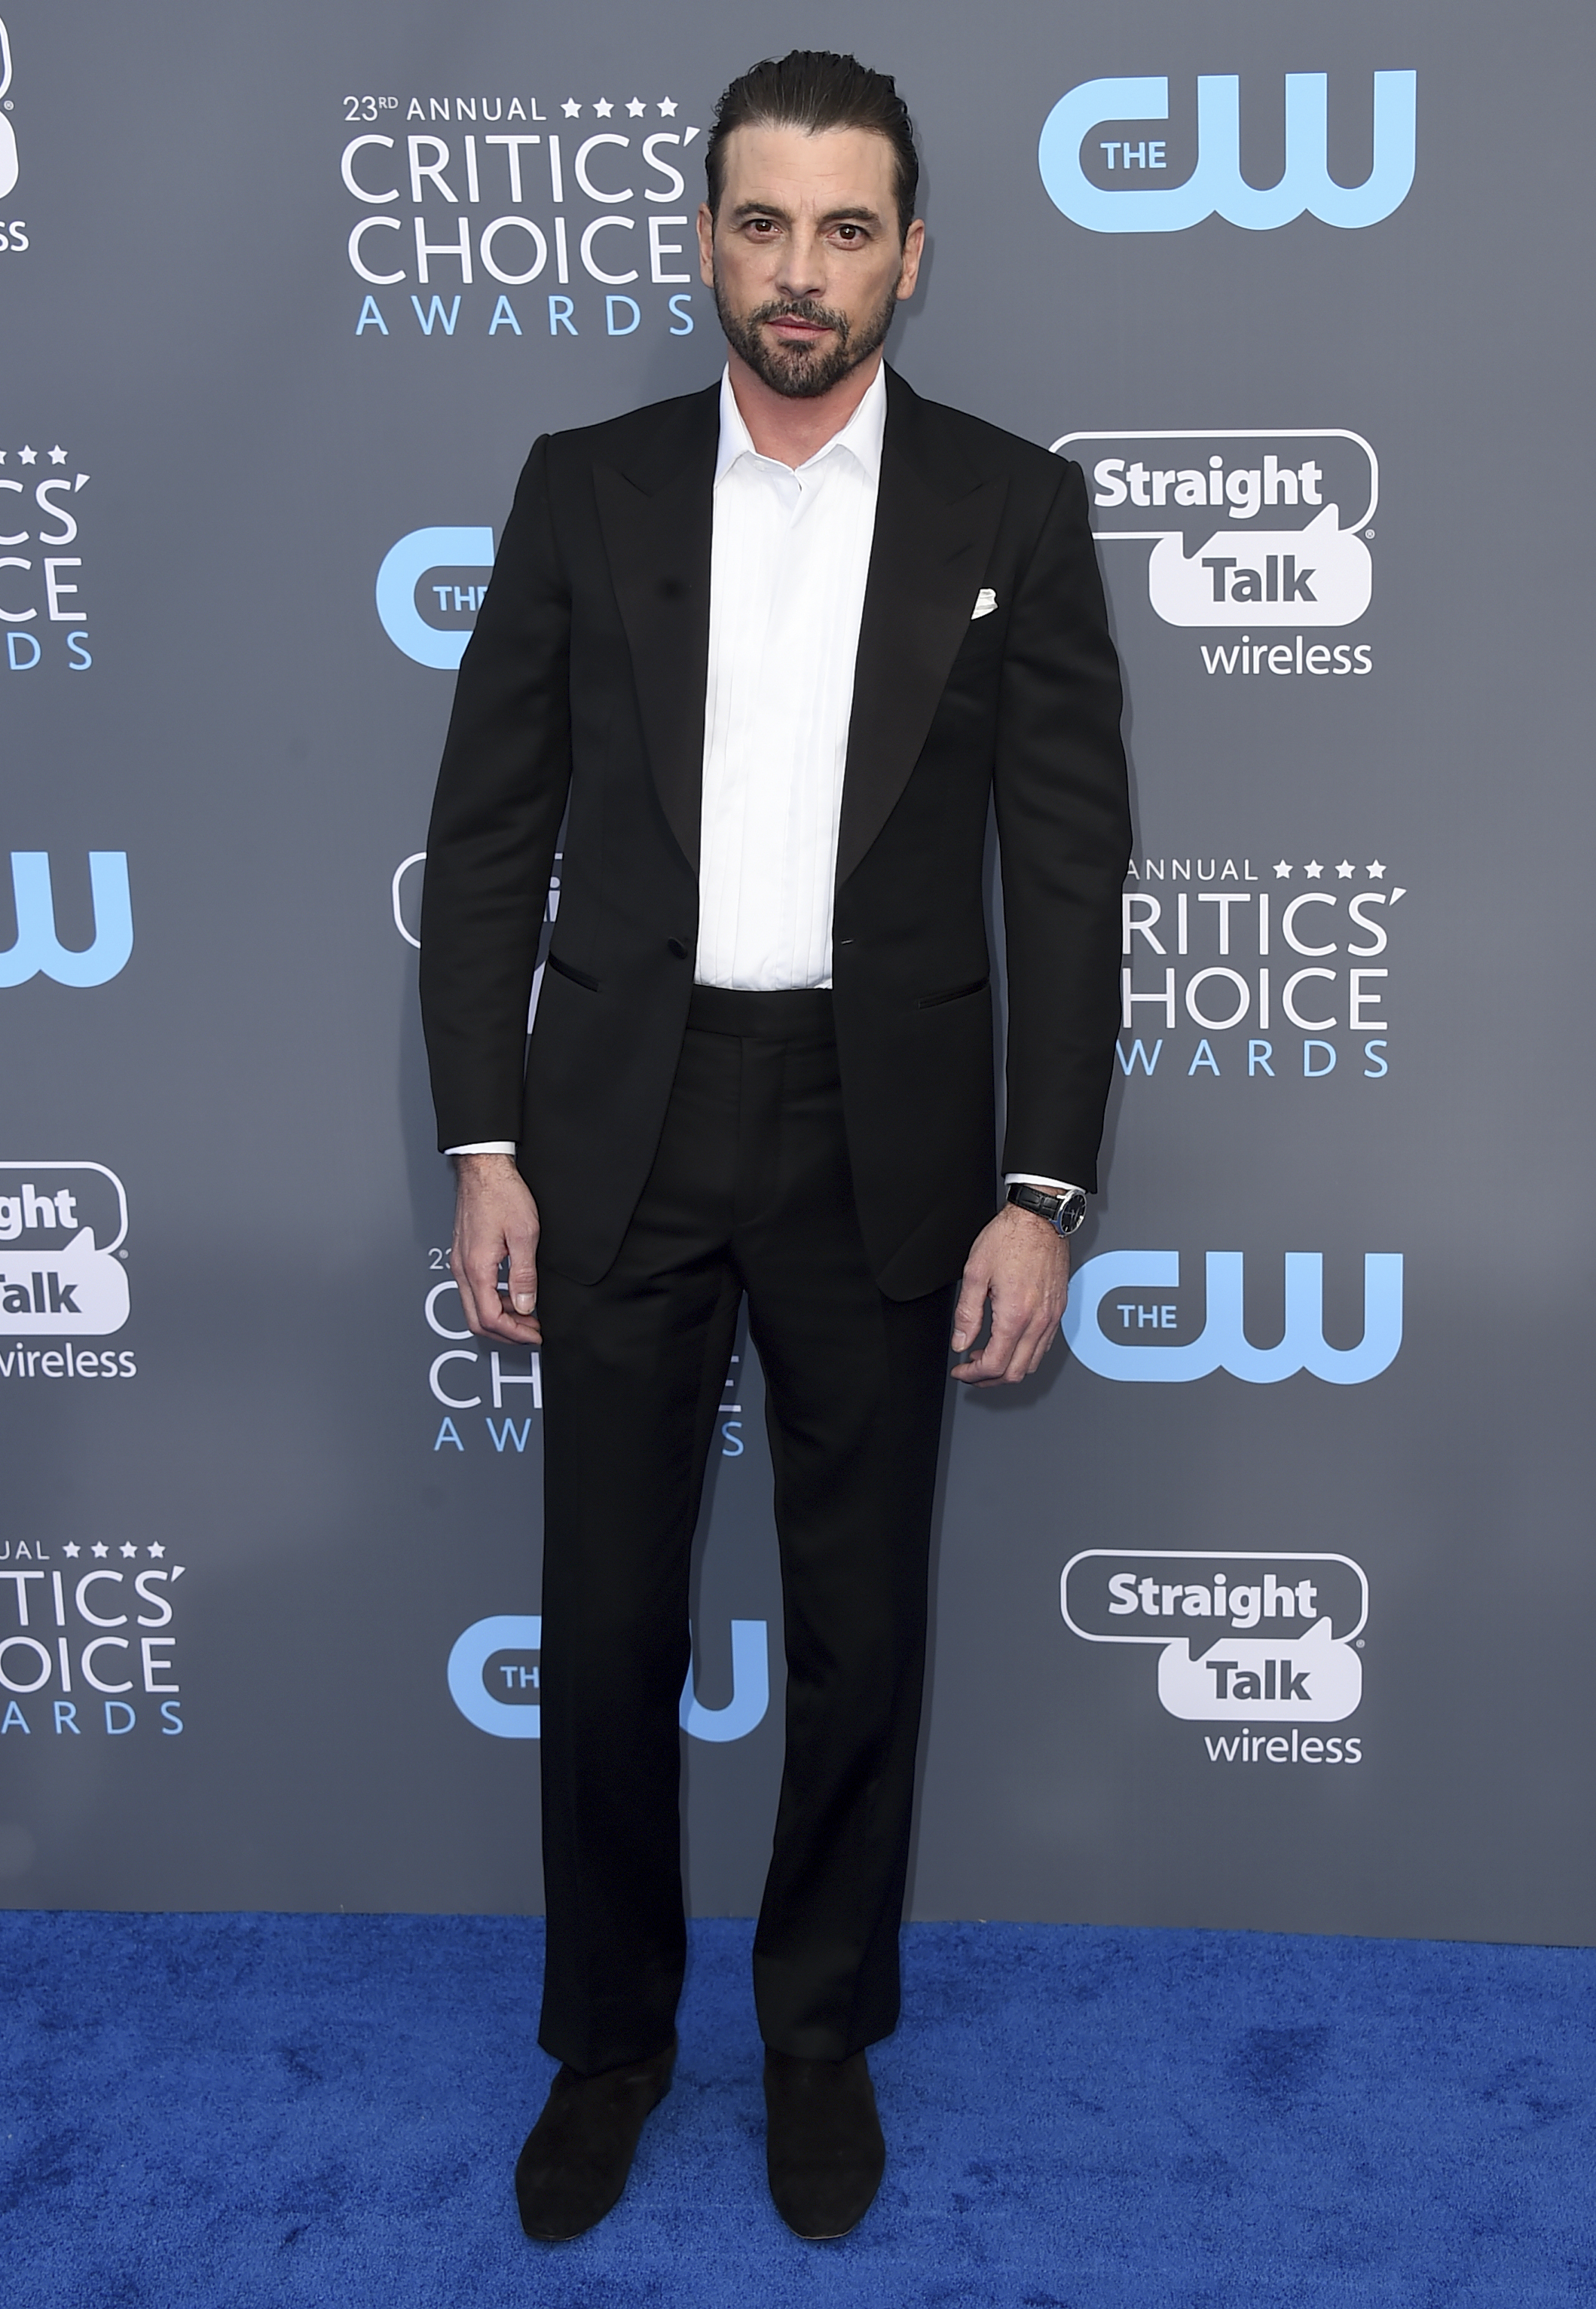 <div class='meta'><div class='origin-logo' data-origin='AP'></div><span class='caption-text' data-credit='Jordan Strauss/Invision/AP'>Skeet Ulrich arrives at the 23rd annual Critics' Choice Awards at the Barker Hangar on Thursday, Jan. 11, 2018, in Santa Monica, Calif.</span></div>